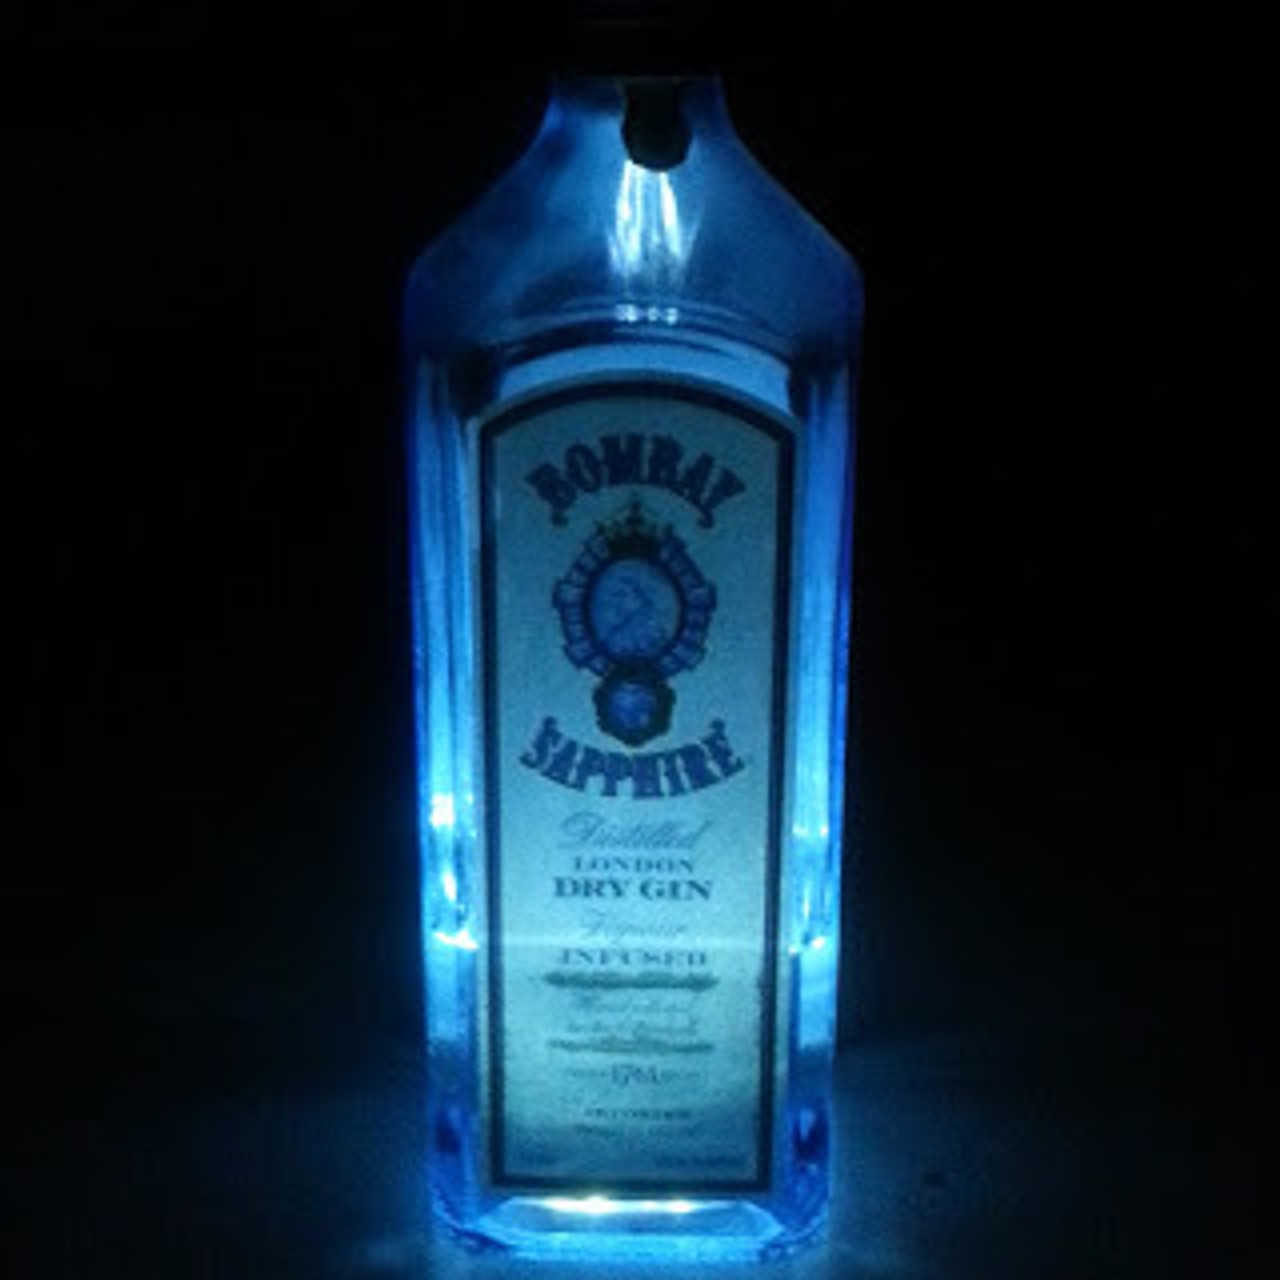 LED BOTTLE GLOW, BRIGHT BOTTLE DISPLAY